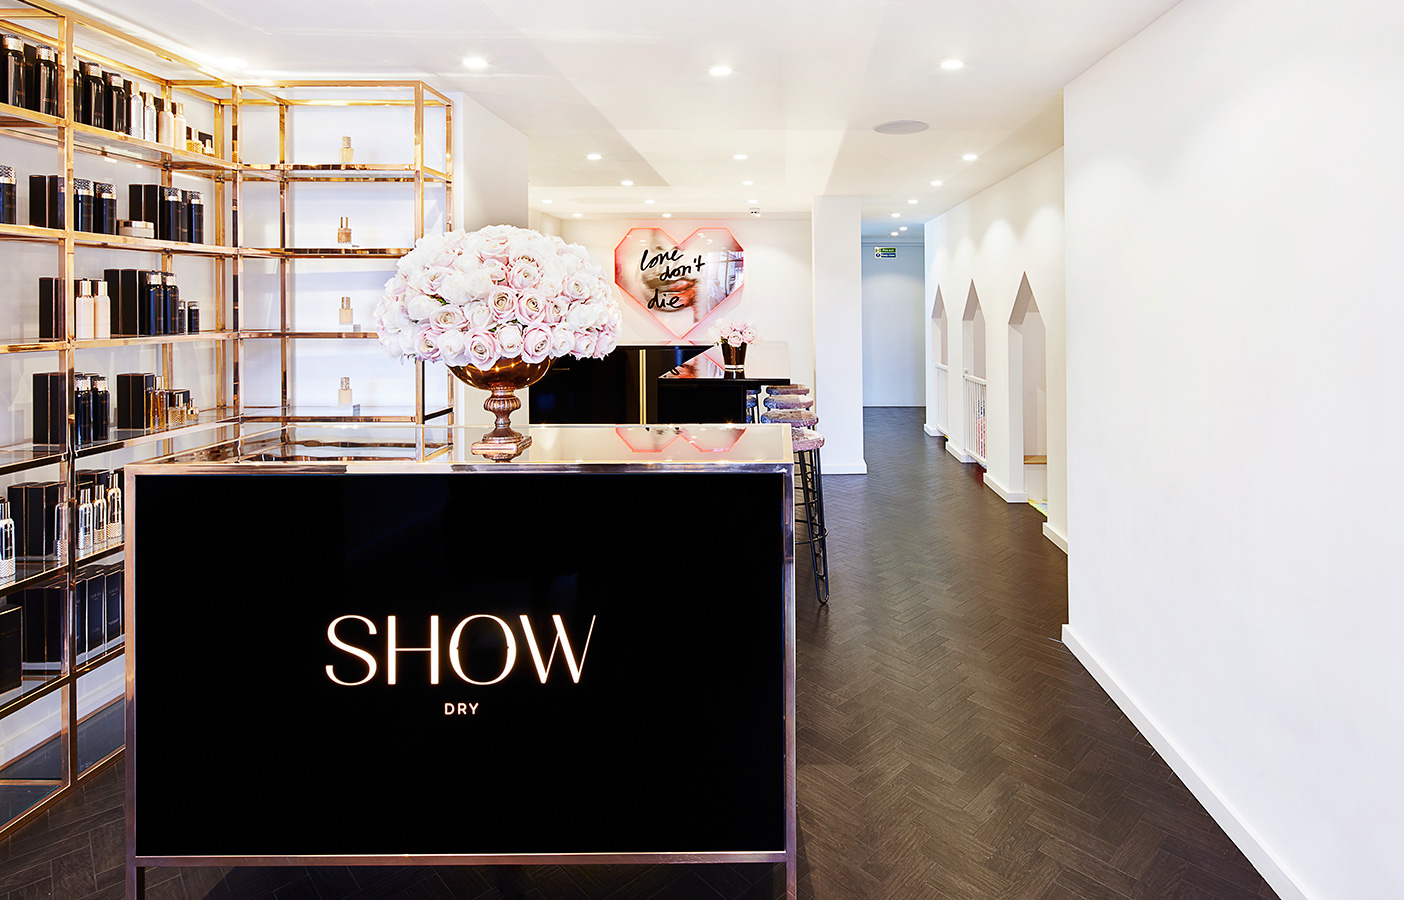 Aldworth James & Bond | SHOW Dry Wimbledon luxury salon reception desk